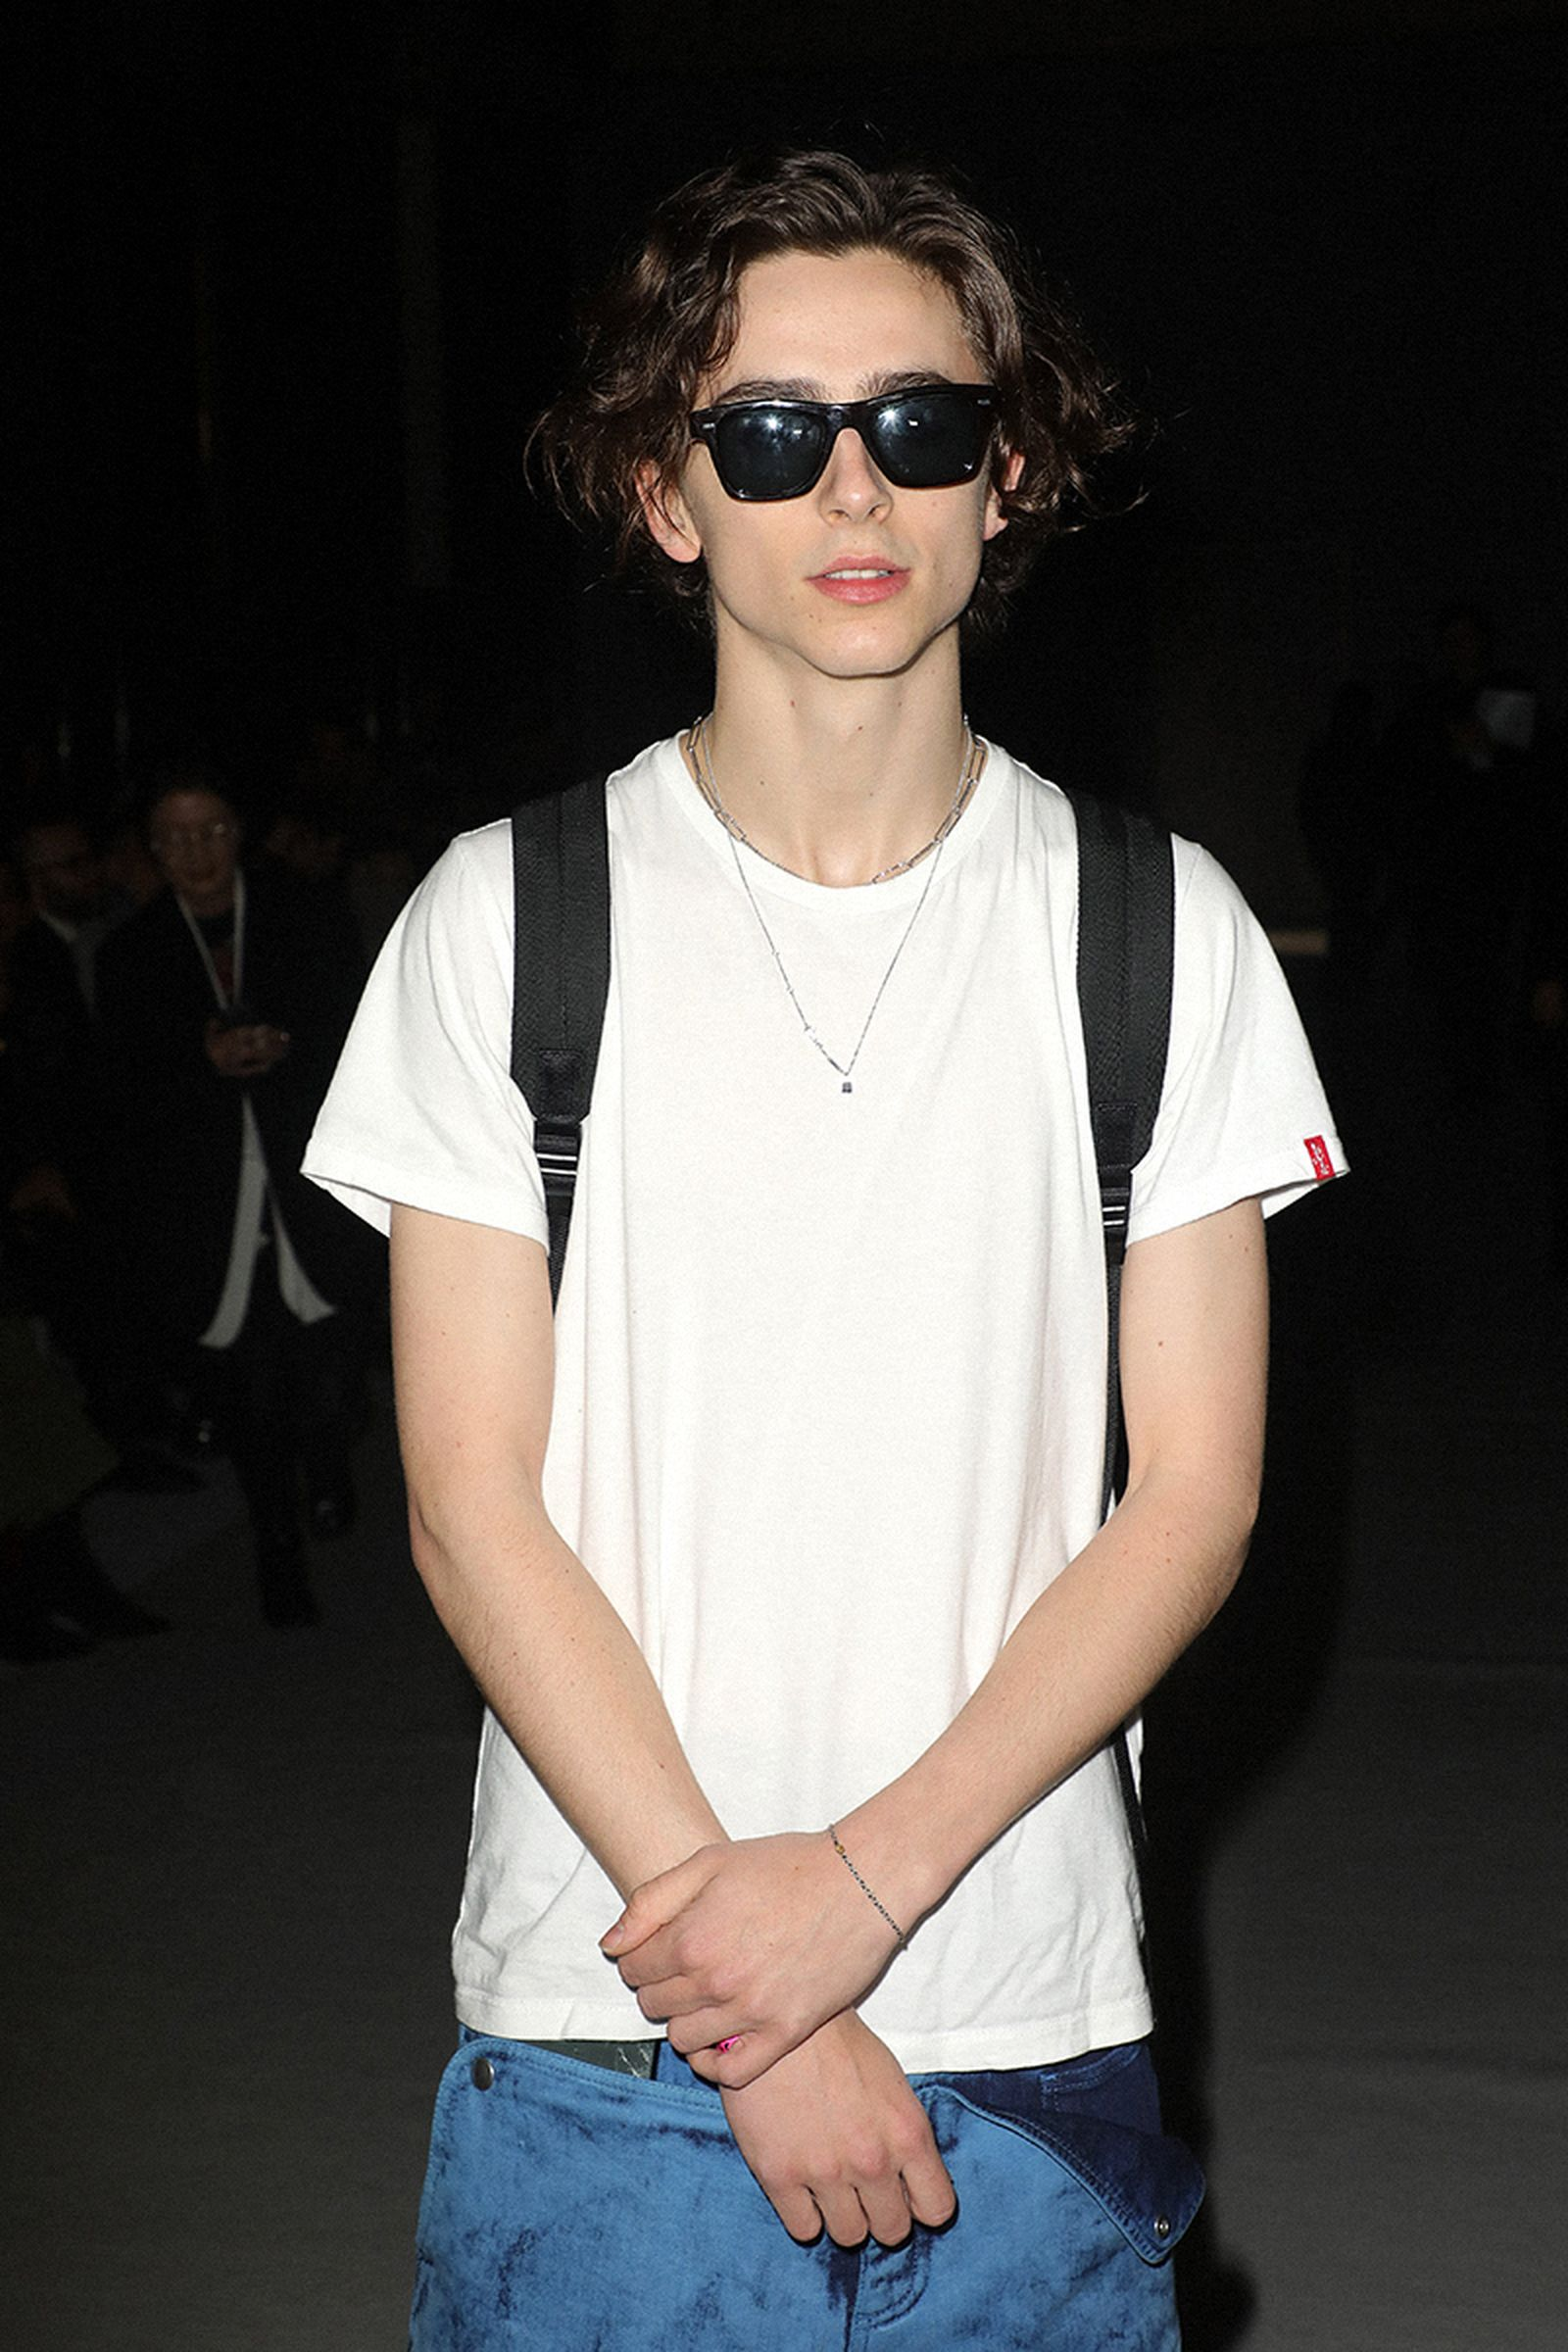 Timothee Chalamet attends the Haider Ackermann show as part of the Paris Fashion Week Womenswear Fall/Winter 2020/2021 on February 29, 2020 in Paris, France